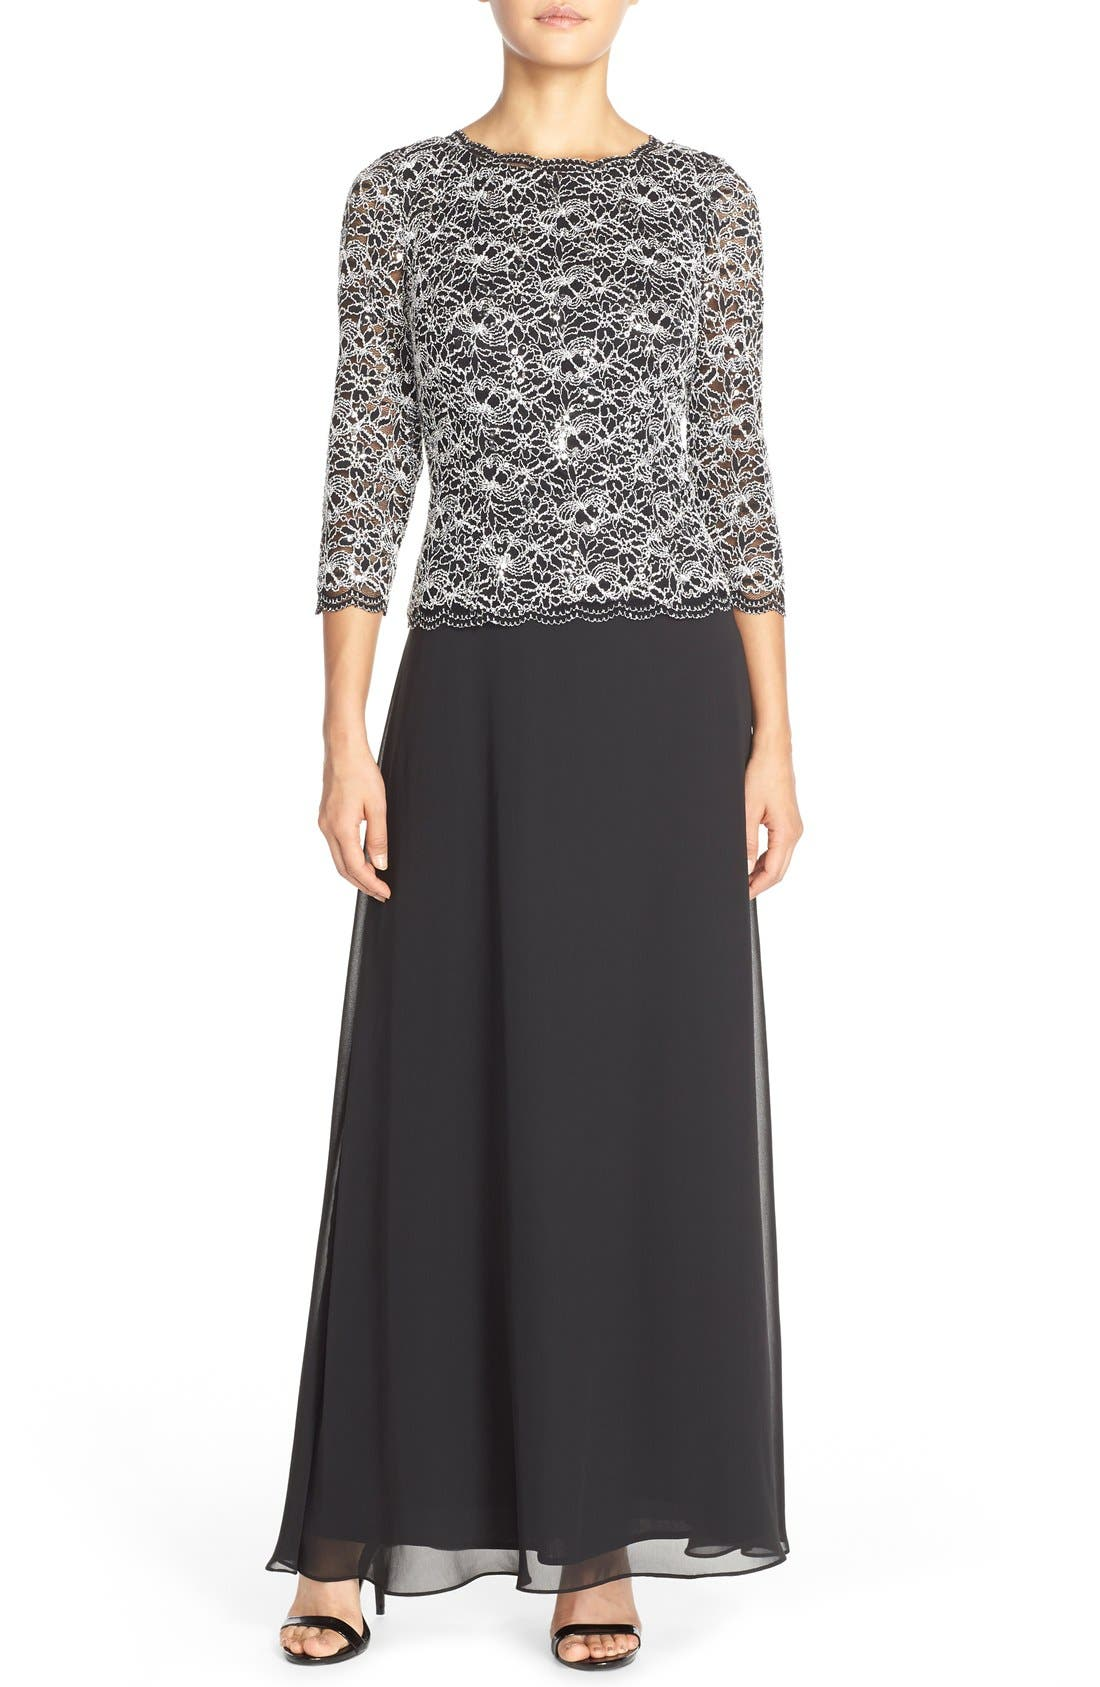 ALEX EVENINGS Lace & Chiffon Mock Two-Piece Gown, Main, color, BLACK/ WHITE